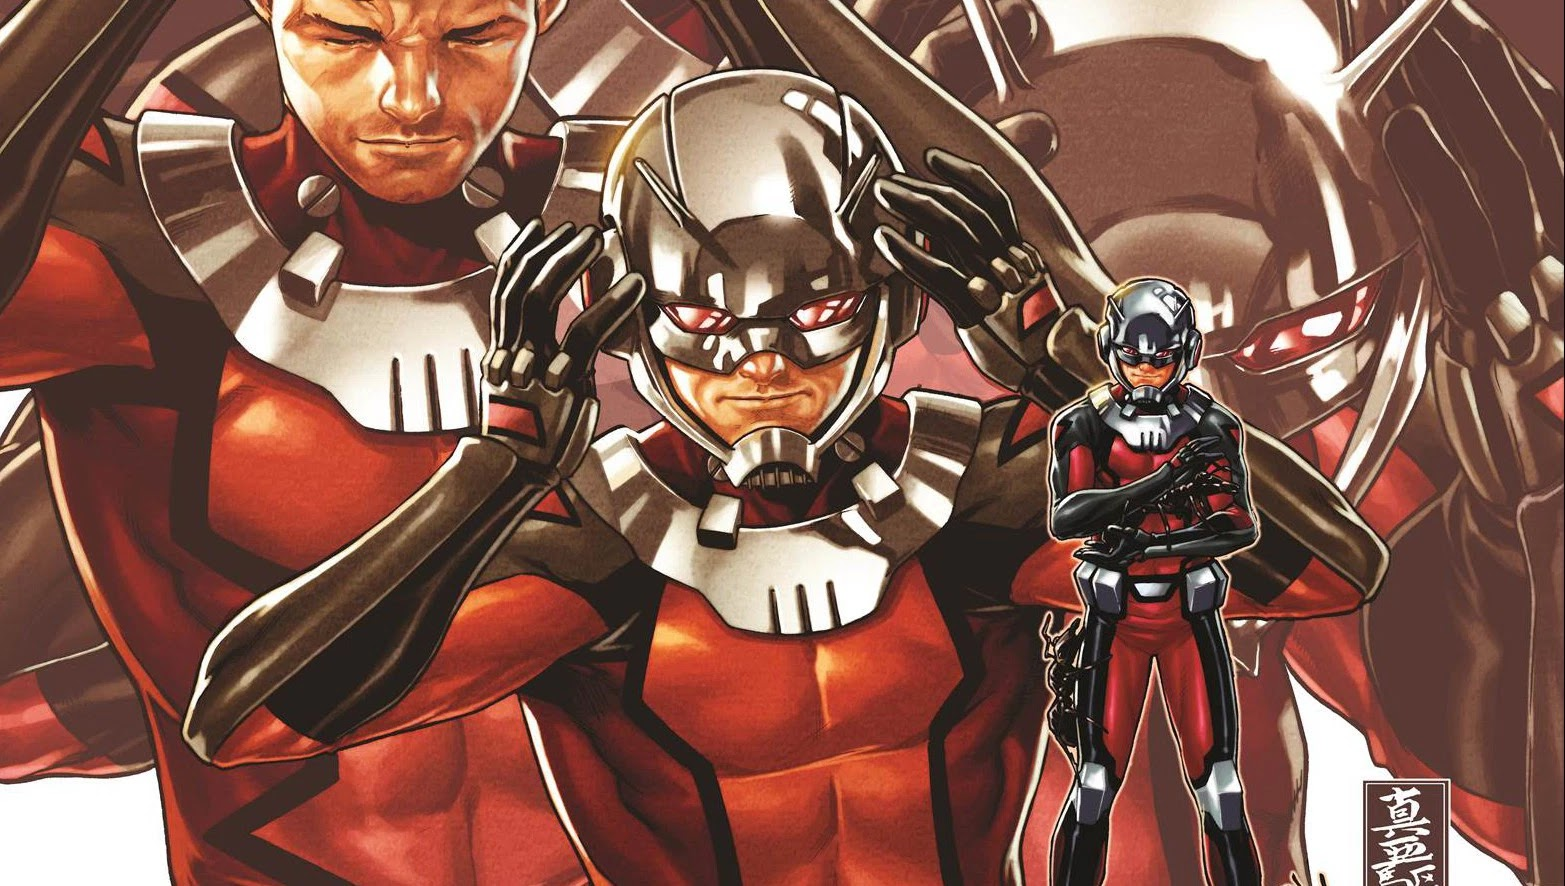 Disney XD Reveals Premier Date For Maverl's Ant-Man Short Films.